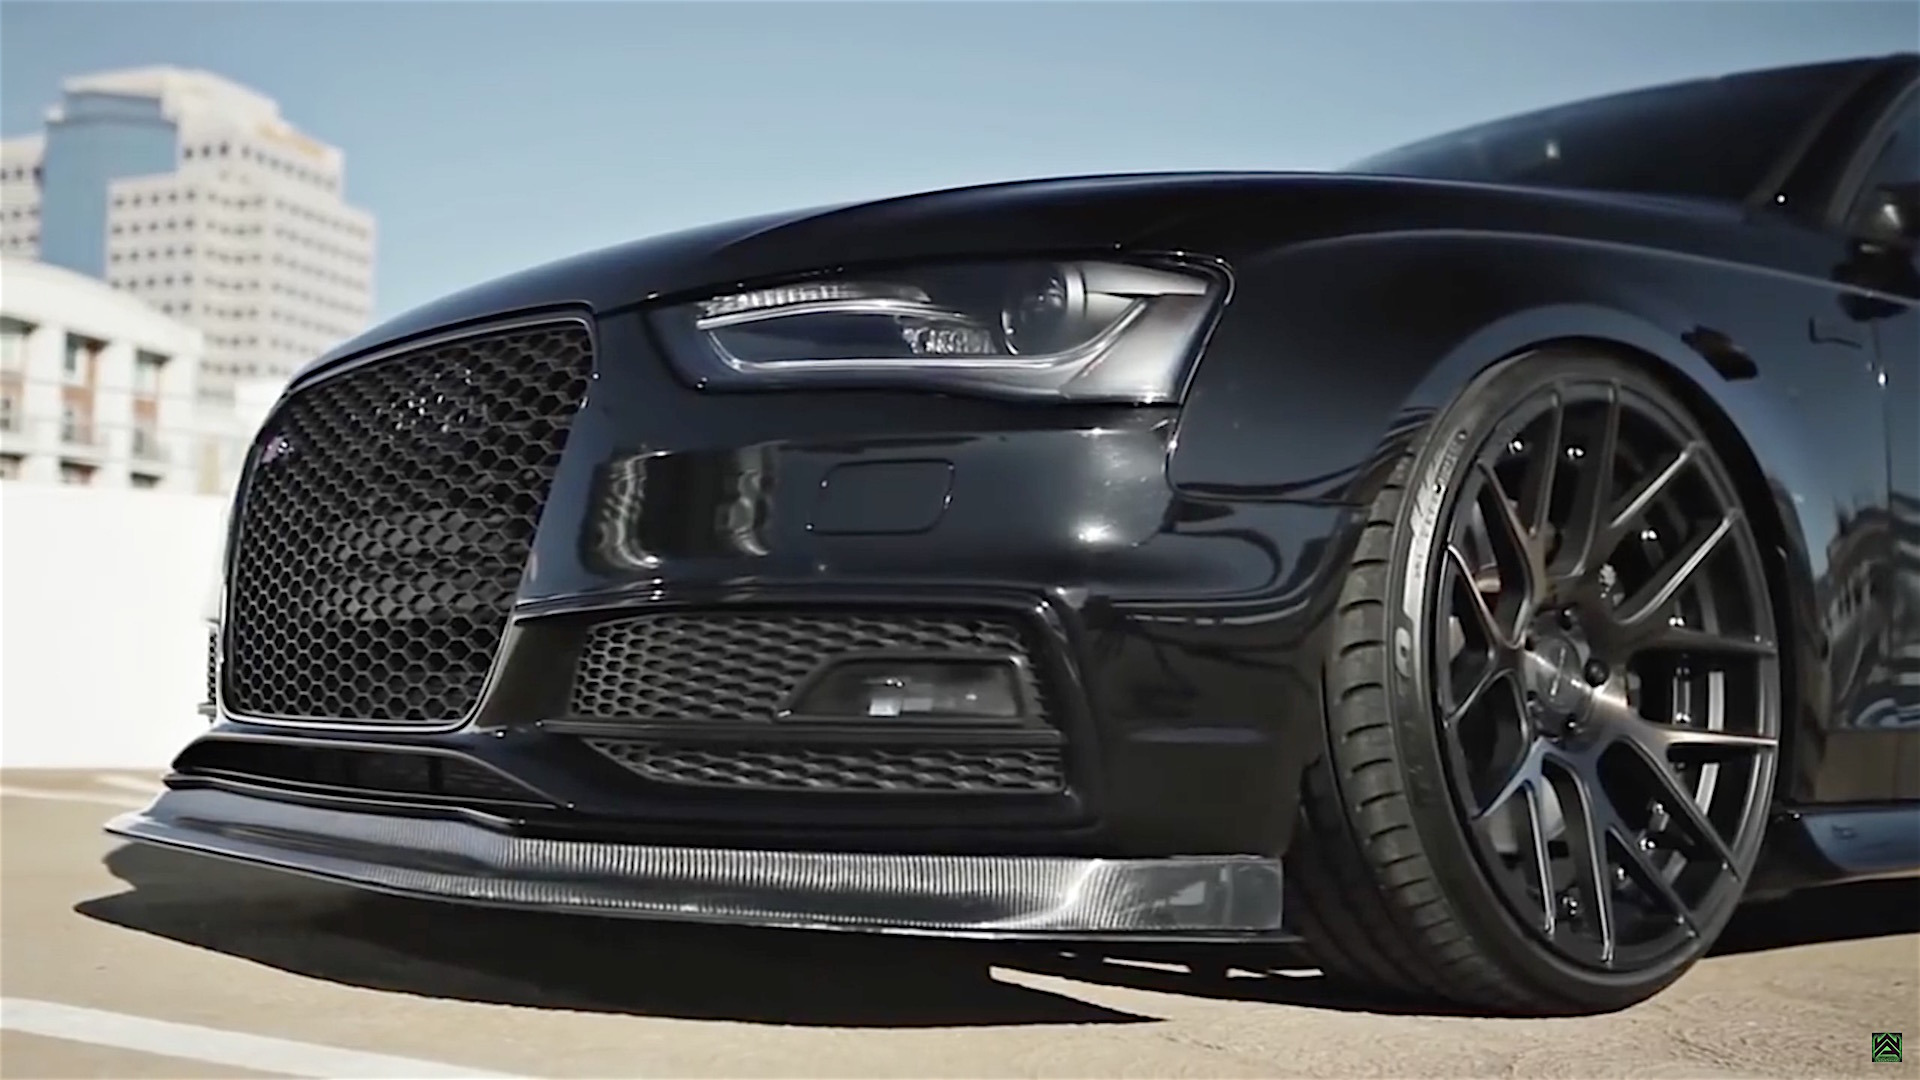 Audi S4 With Armytrix Exhaust System And Stance Wheels